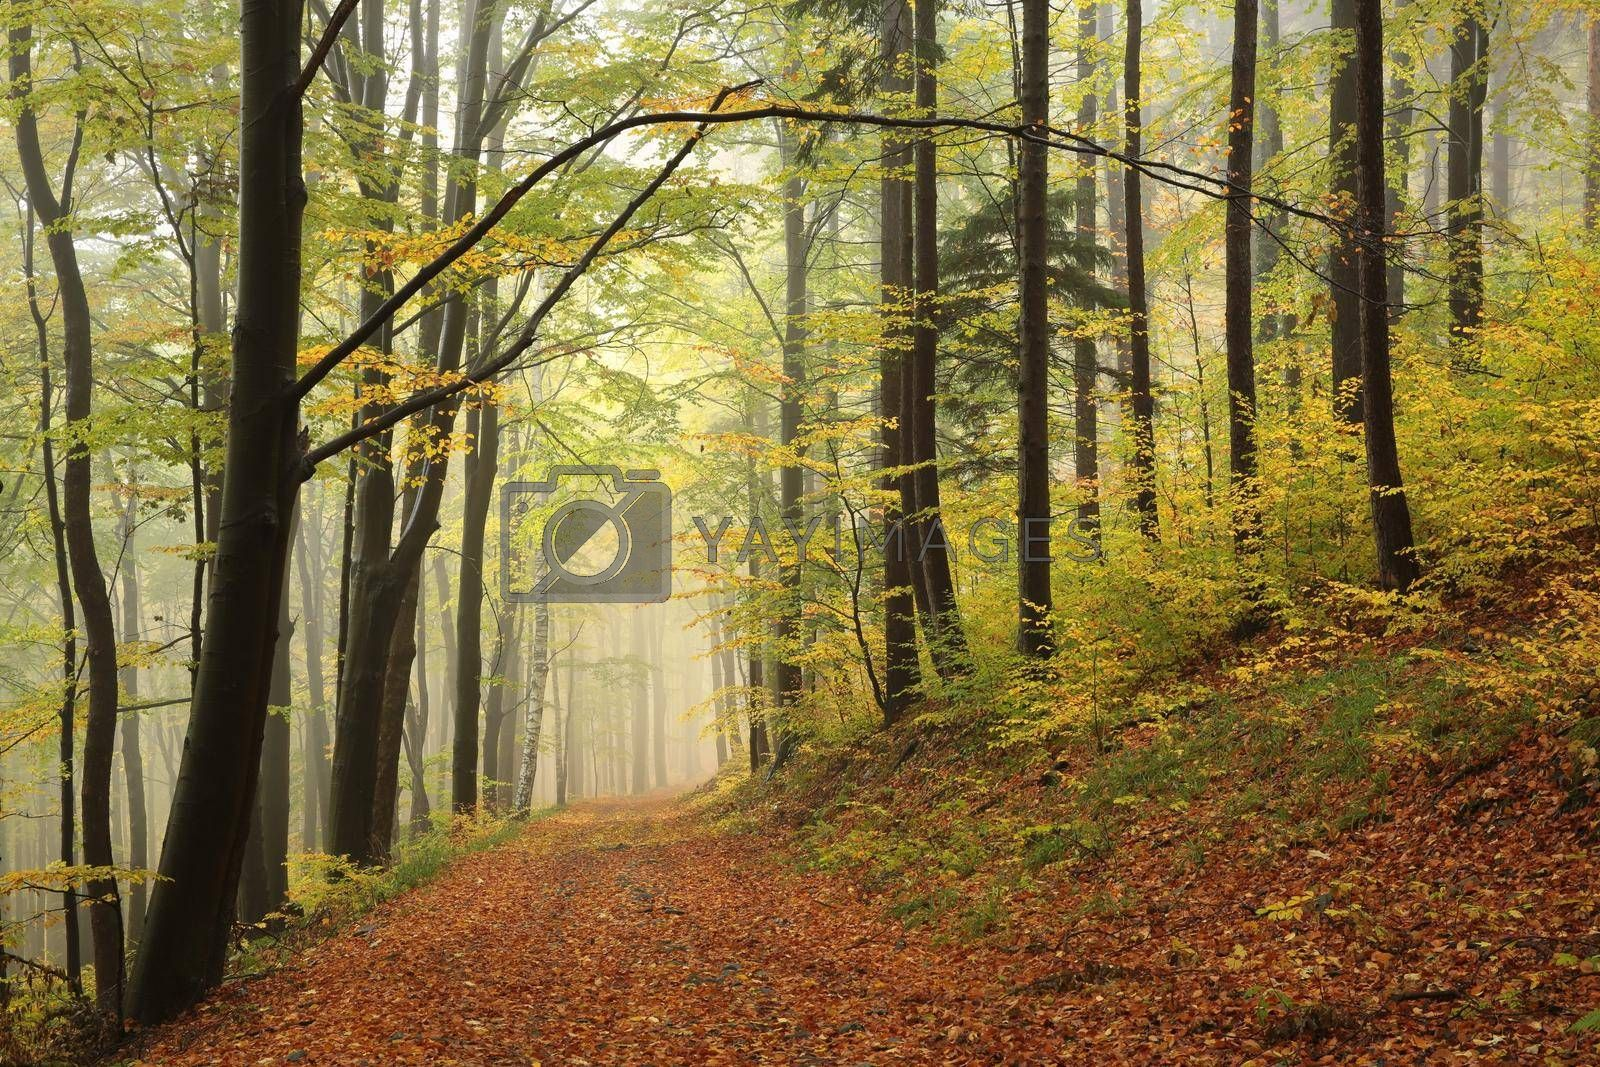 Trail among beech trees in an autumn forest in foggy weather.